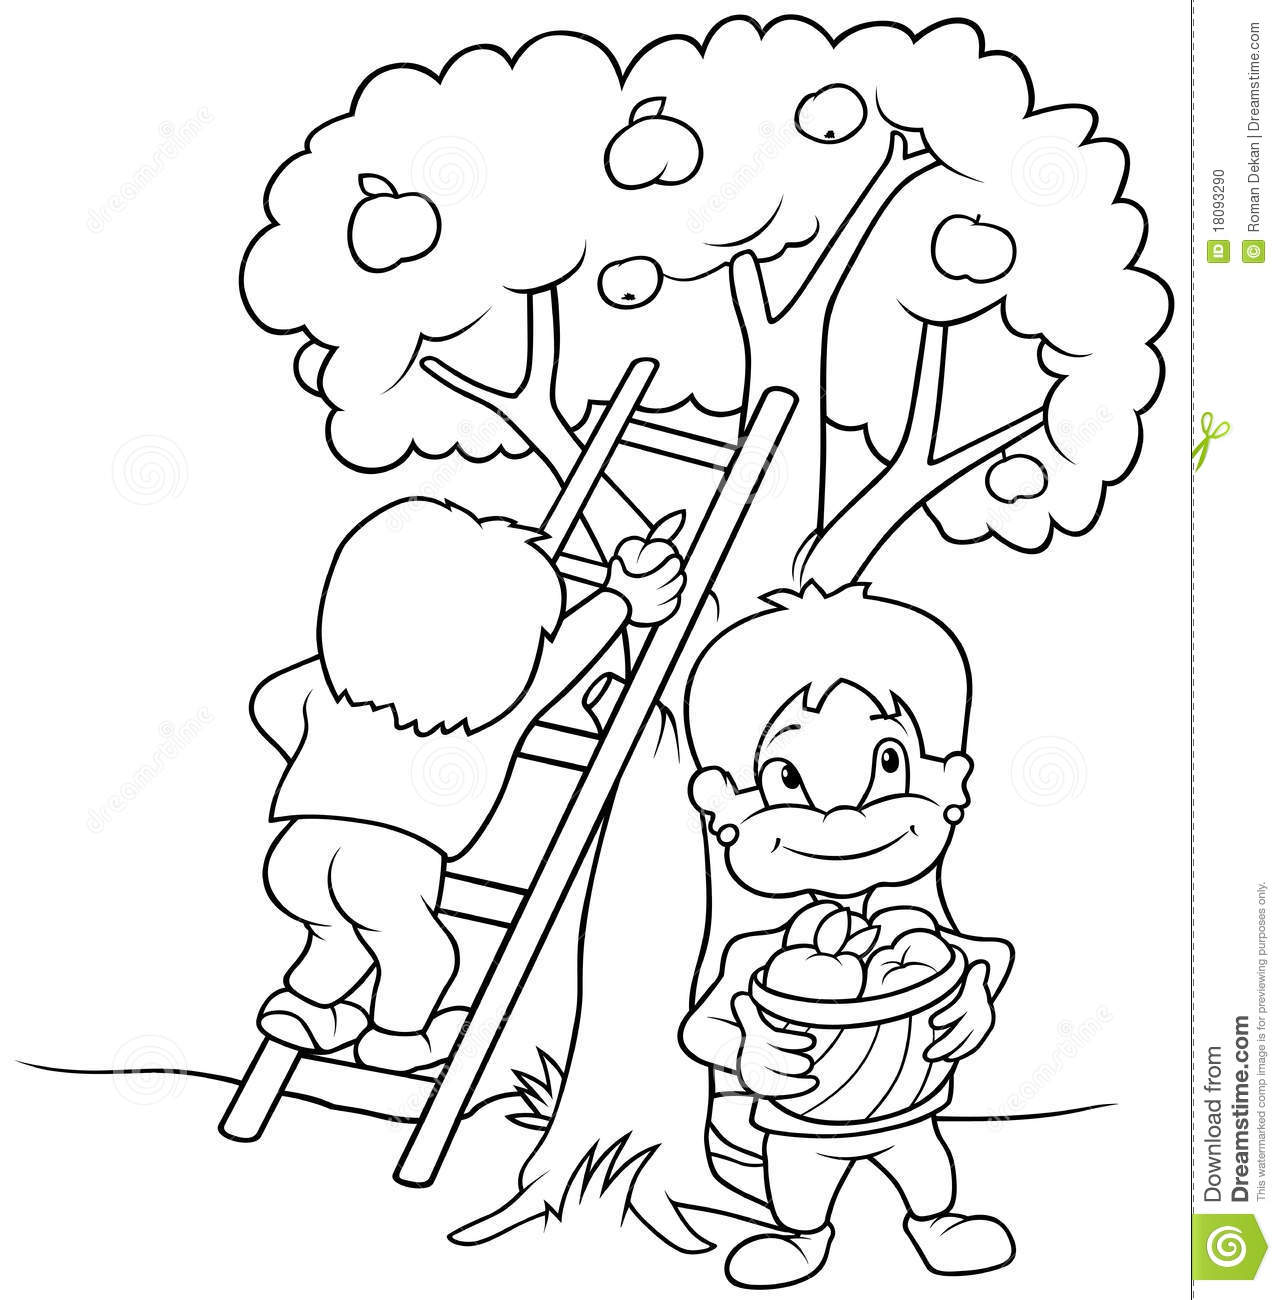 children picking apples coloring pages - photo#17